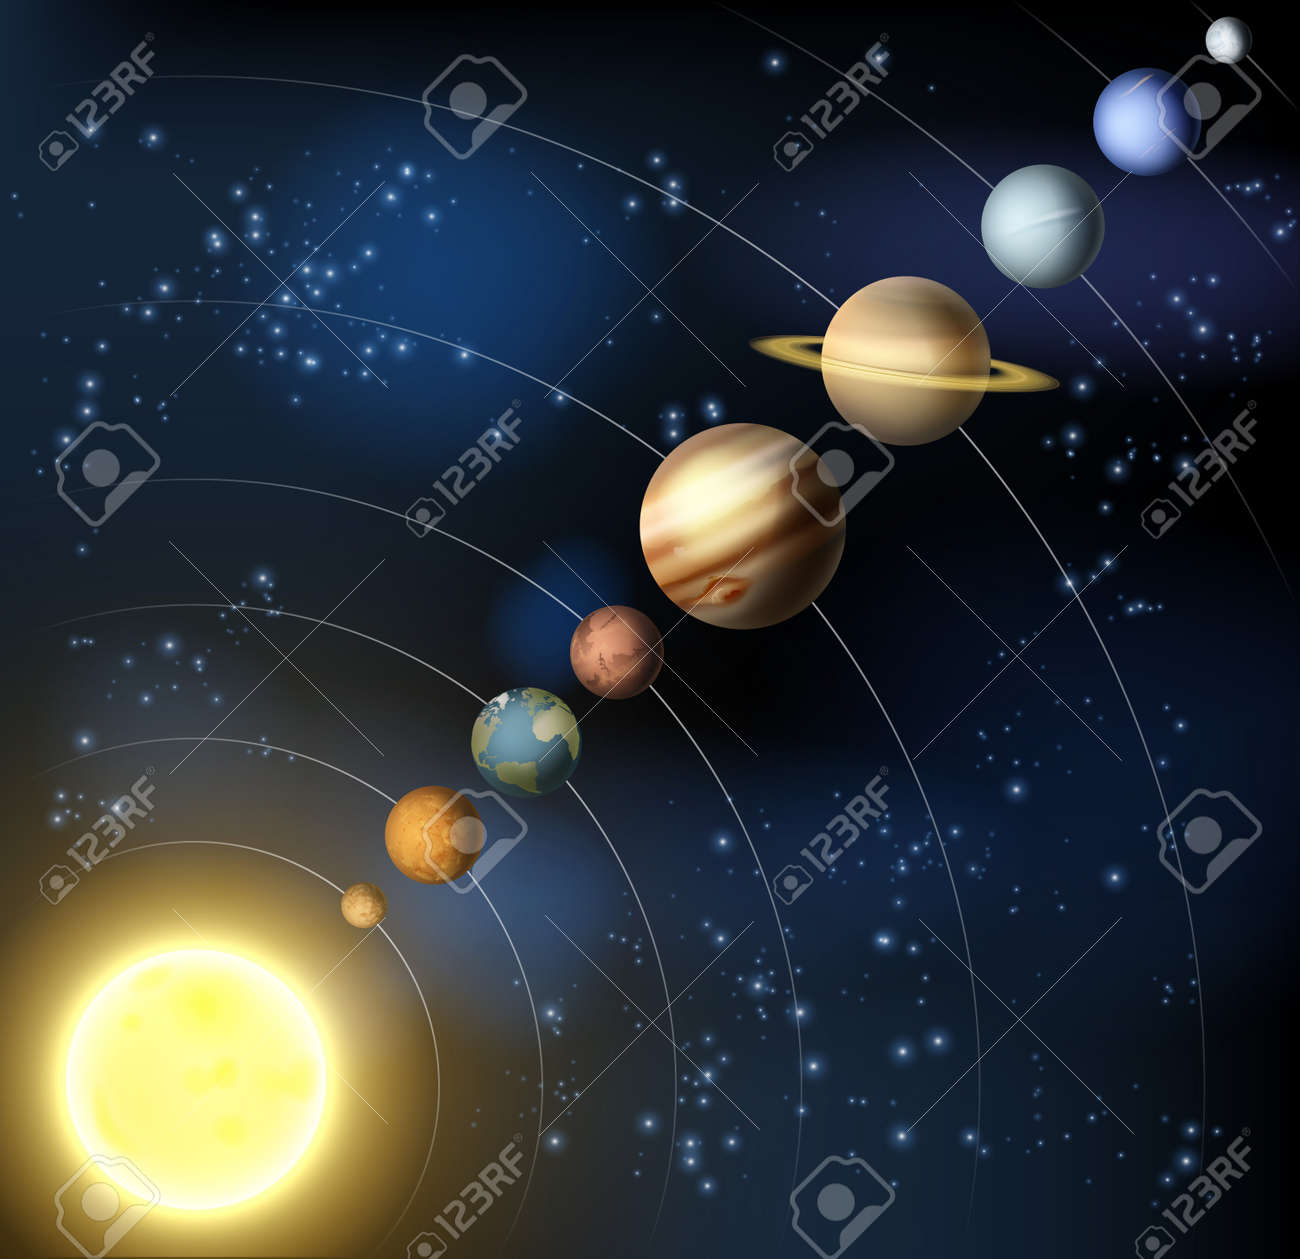 0253f791fd31b7 The solar system with the planets orbiting the sun including the minor  dwarf planet Pluto Stock